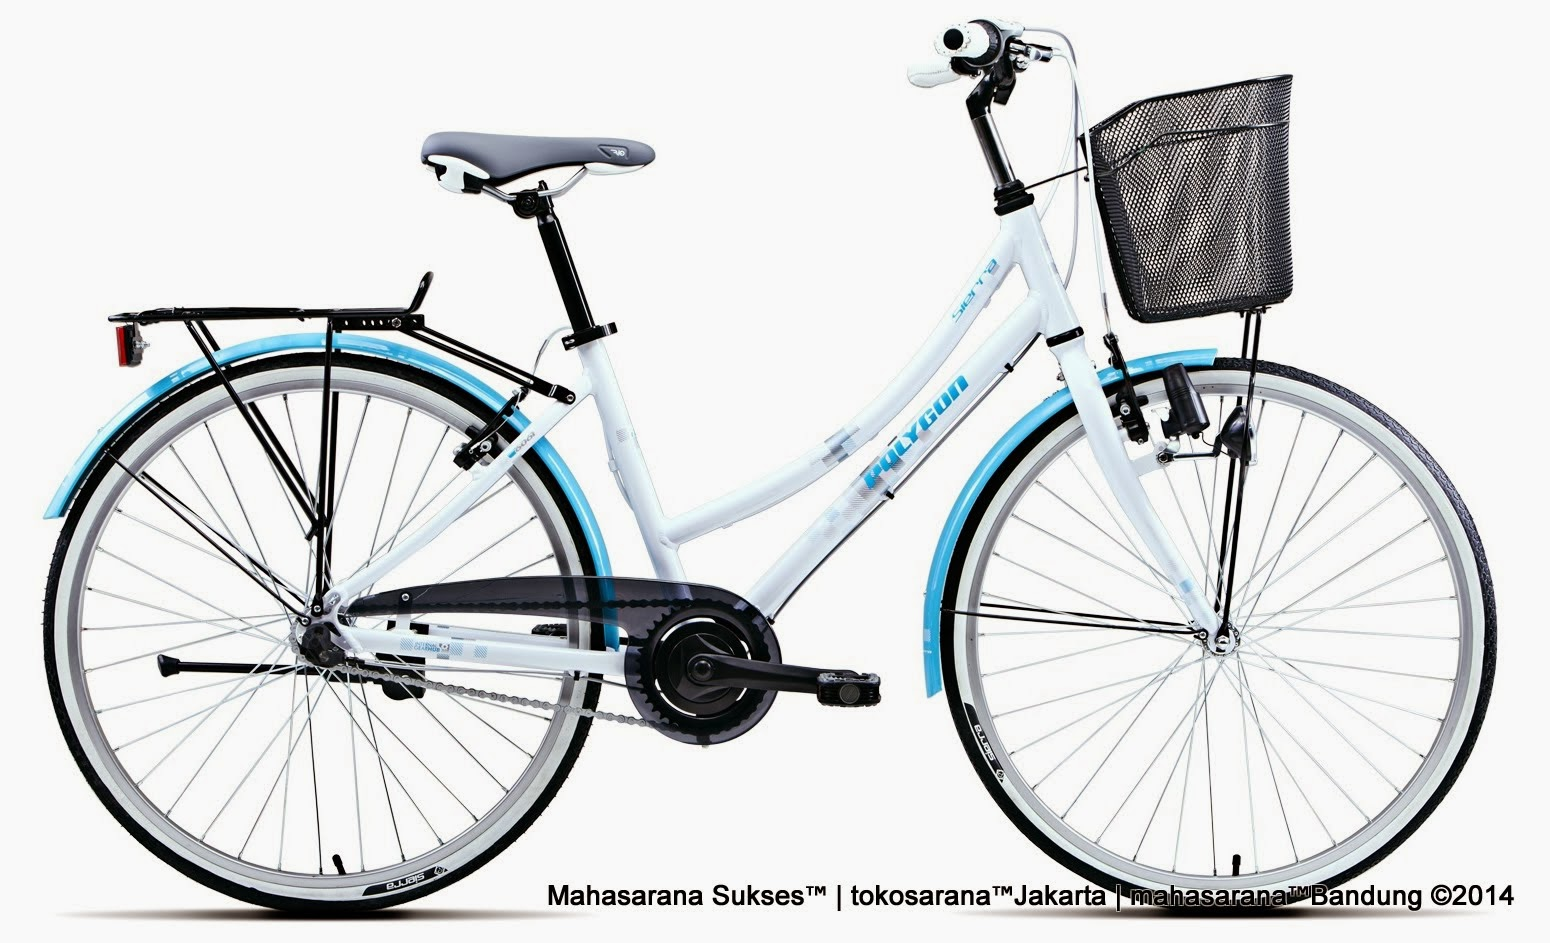 City Bike Polygon Sierra i3 Rangka Aloi 3 Speed Internal Gear Hub 26 Inci